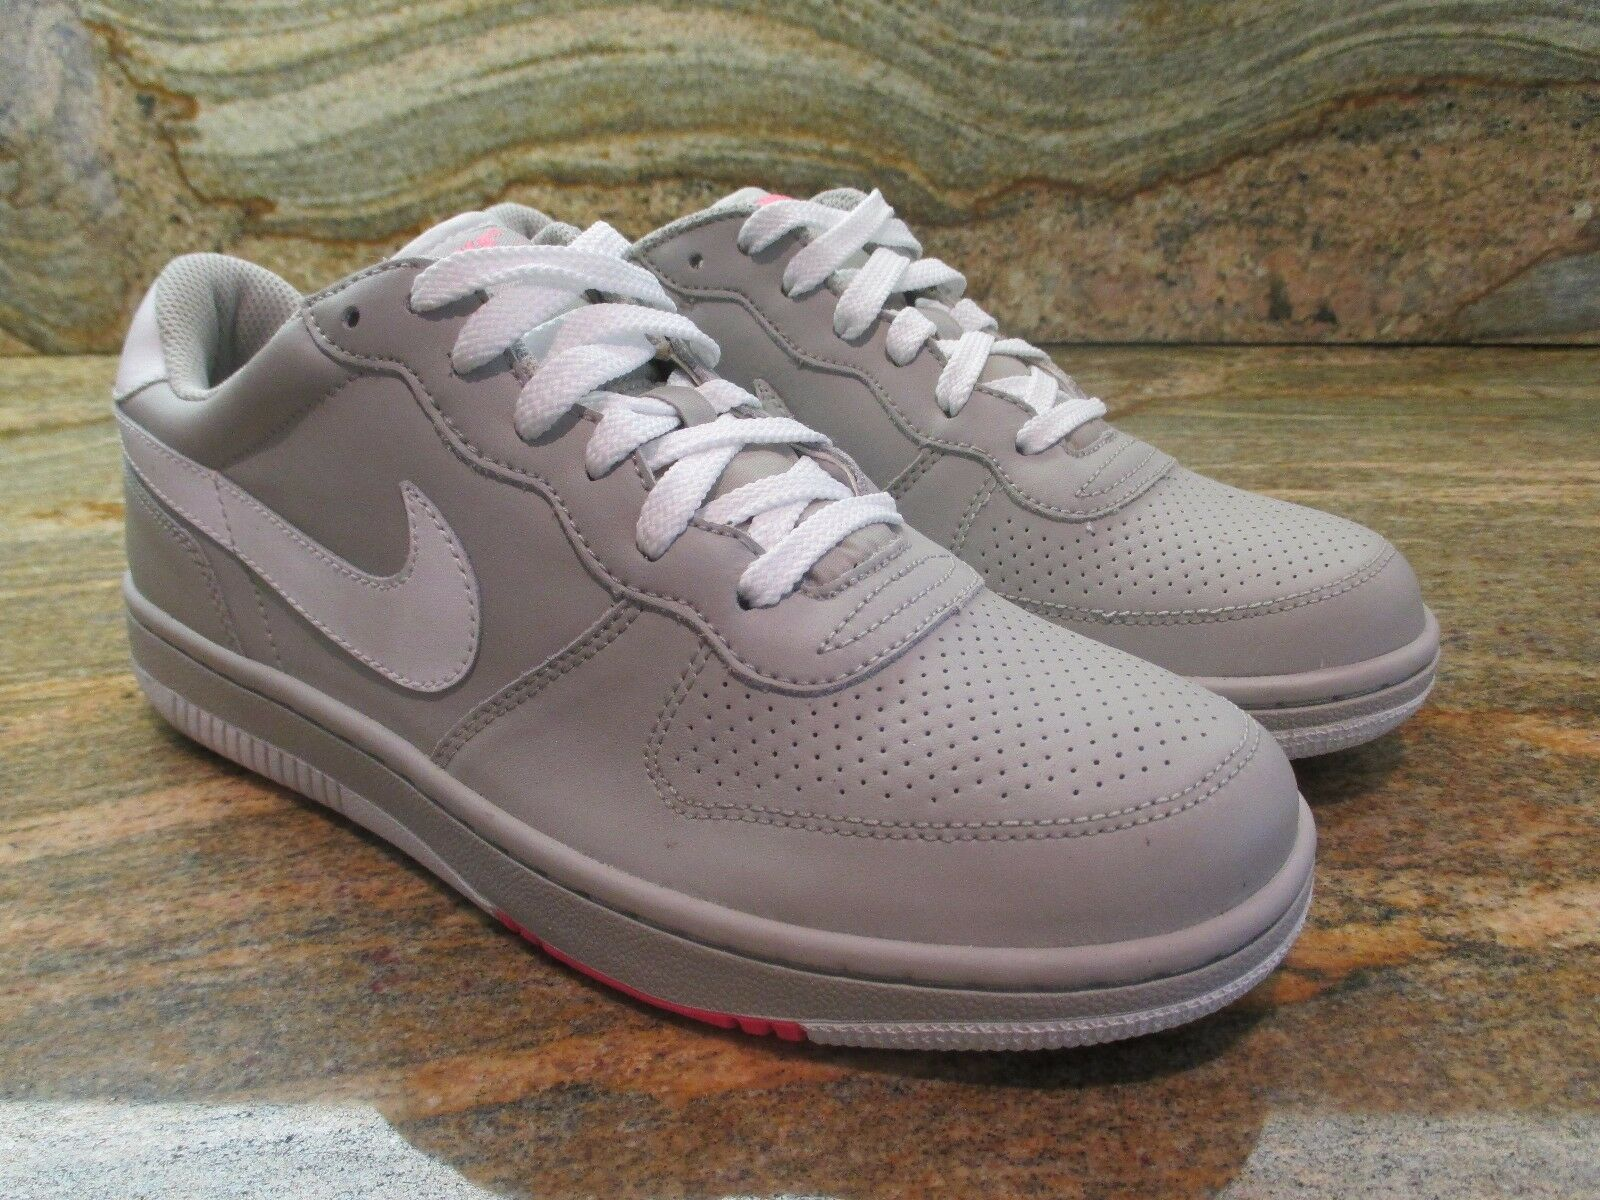 Unreleased 2007 Nike Air Force Package Low 2 Sample SZ 9 Marty McFly 317571-001